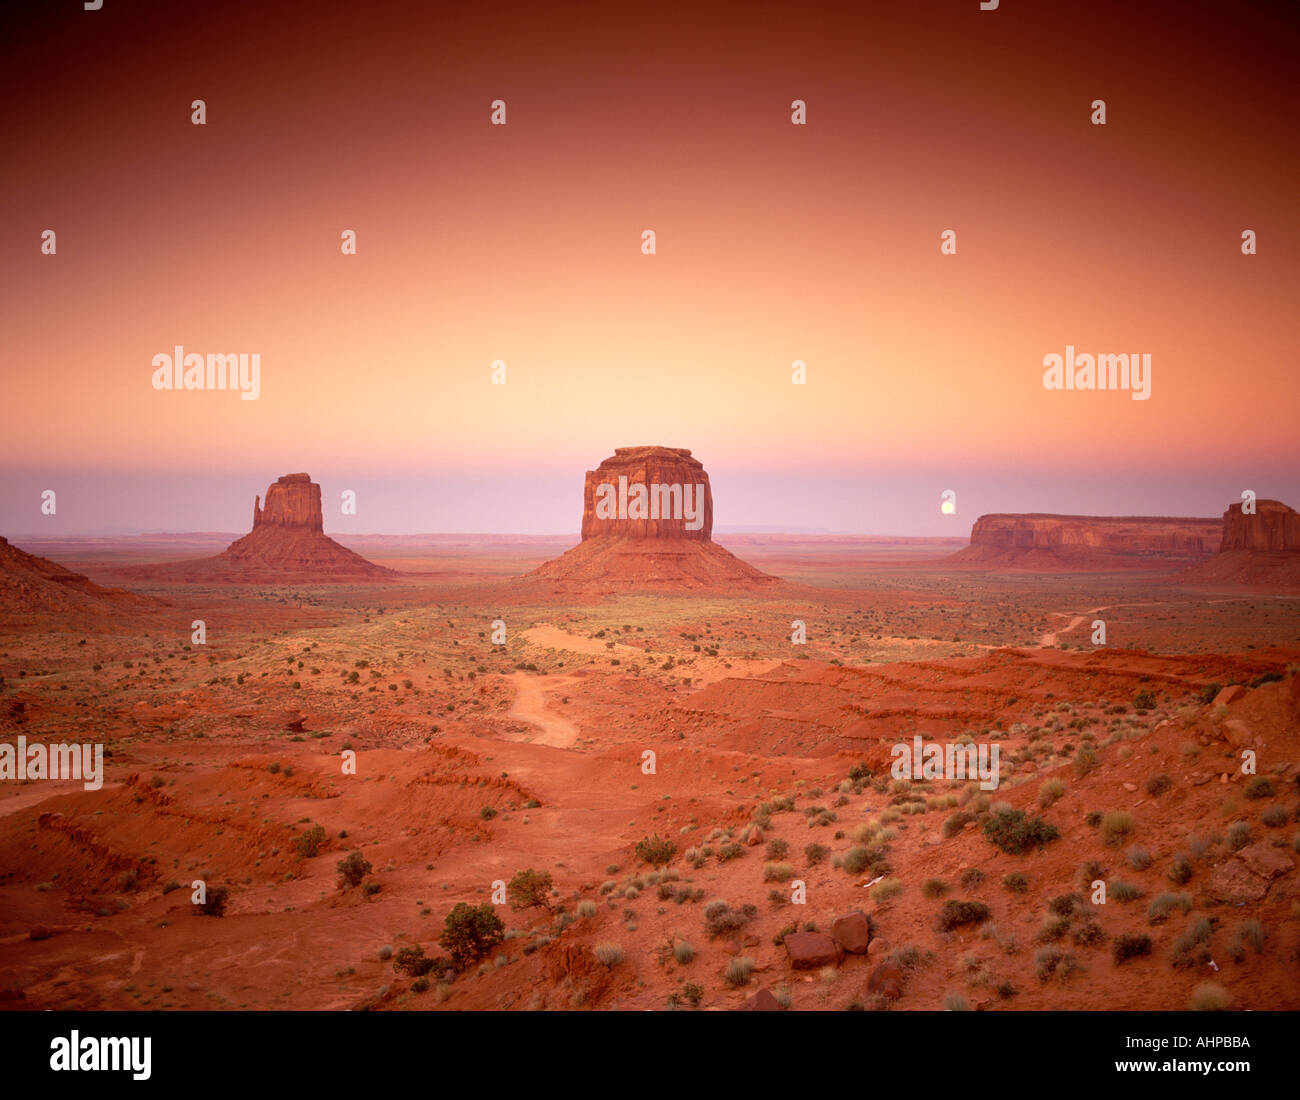 Moonrise over Monument Valley as seen from the Visitors Center Arizona - Stock Image